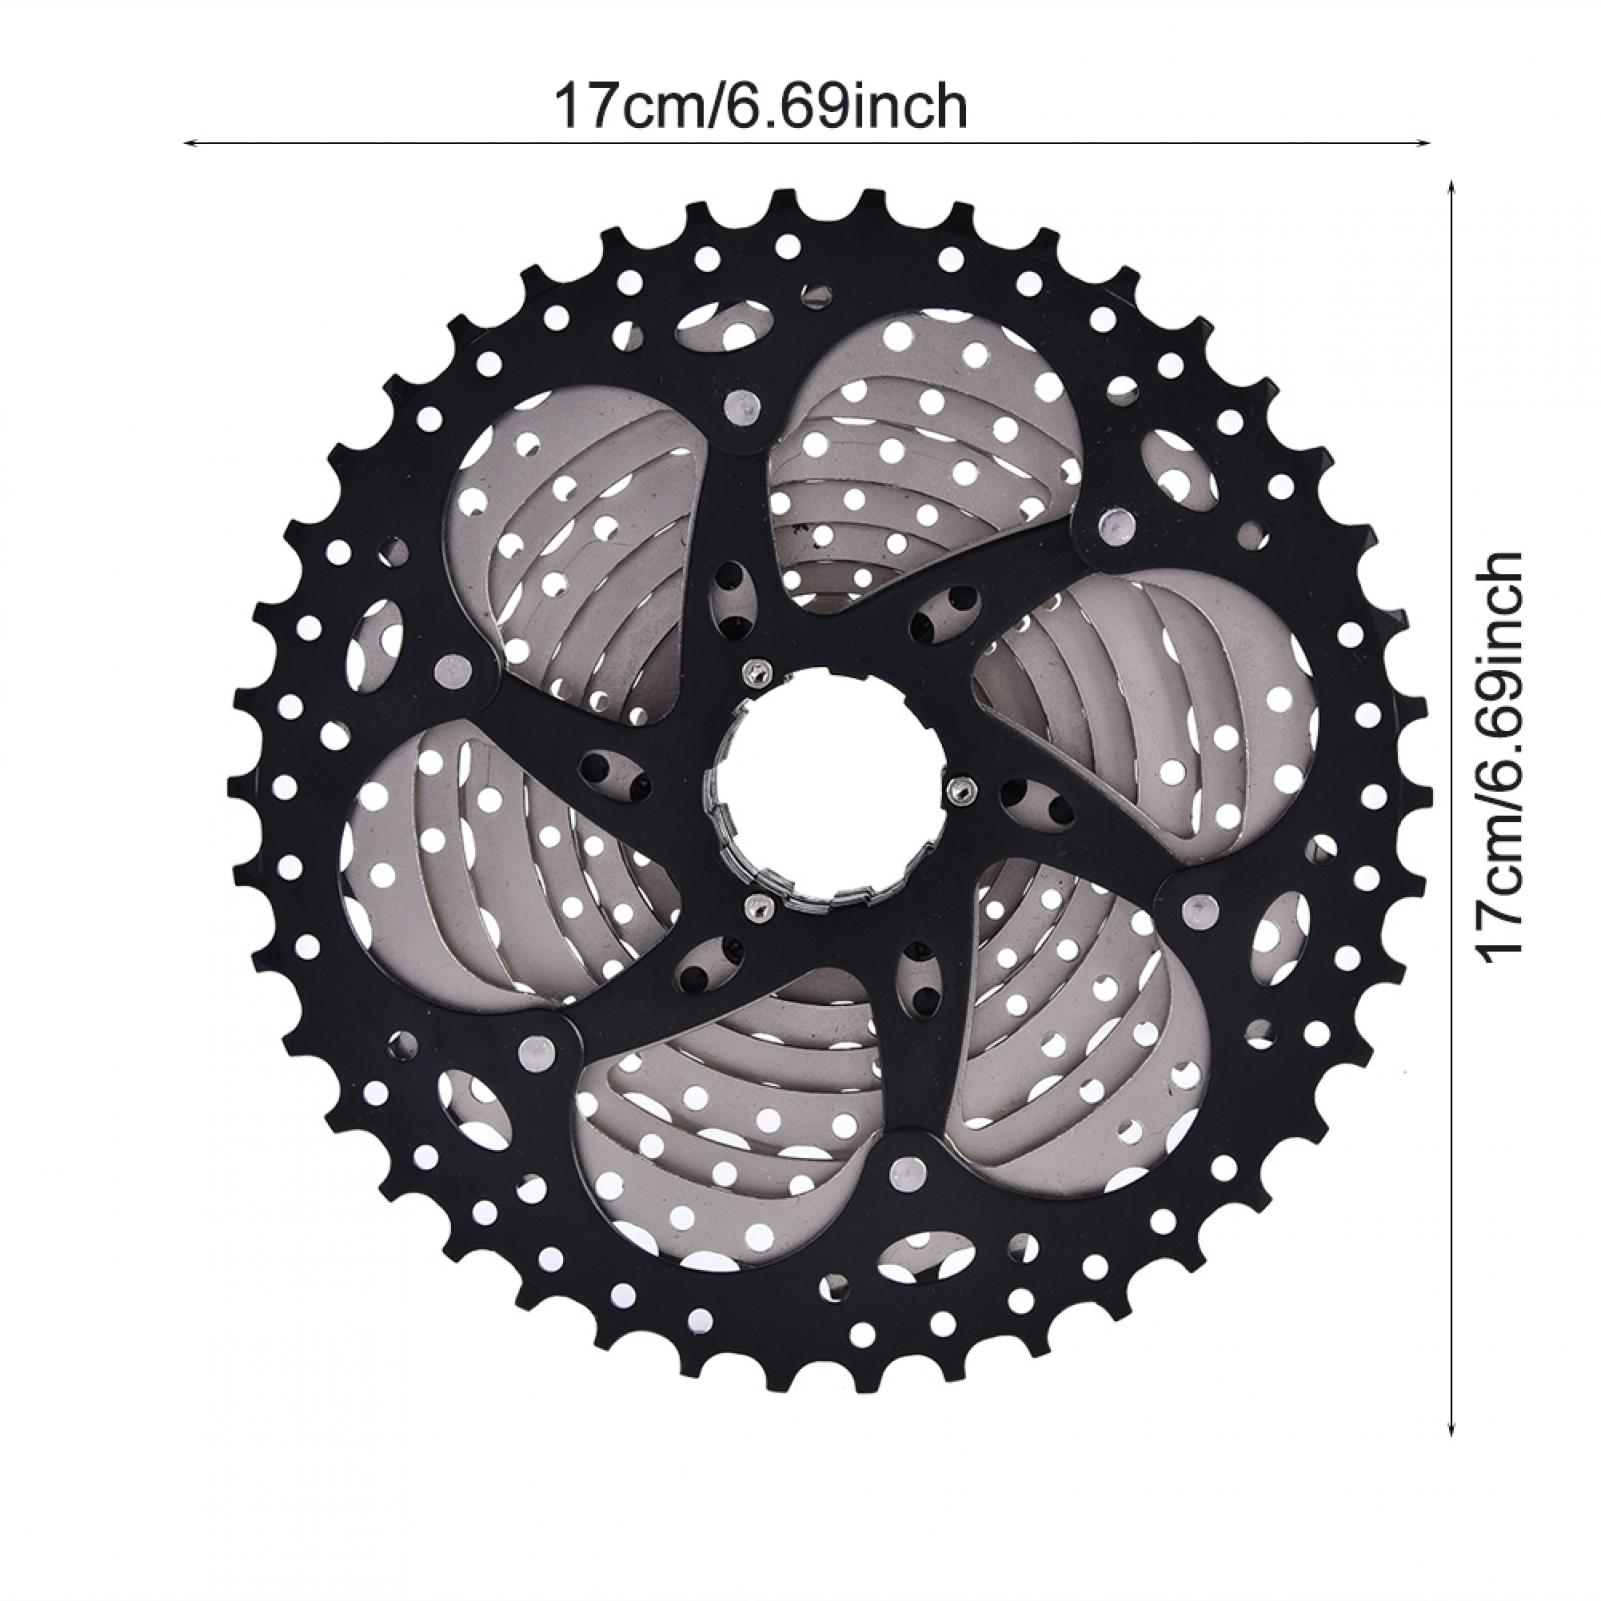 Mountain-Road-Bike-Cassette-8-9-10-Speed-Bicycle-Cassettes-Freewheel-For-SHIMANO thumbnail 14